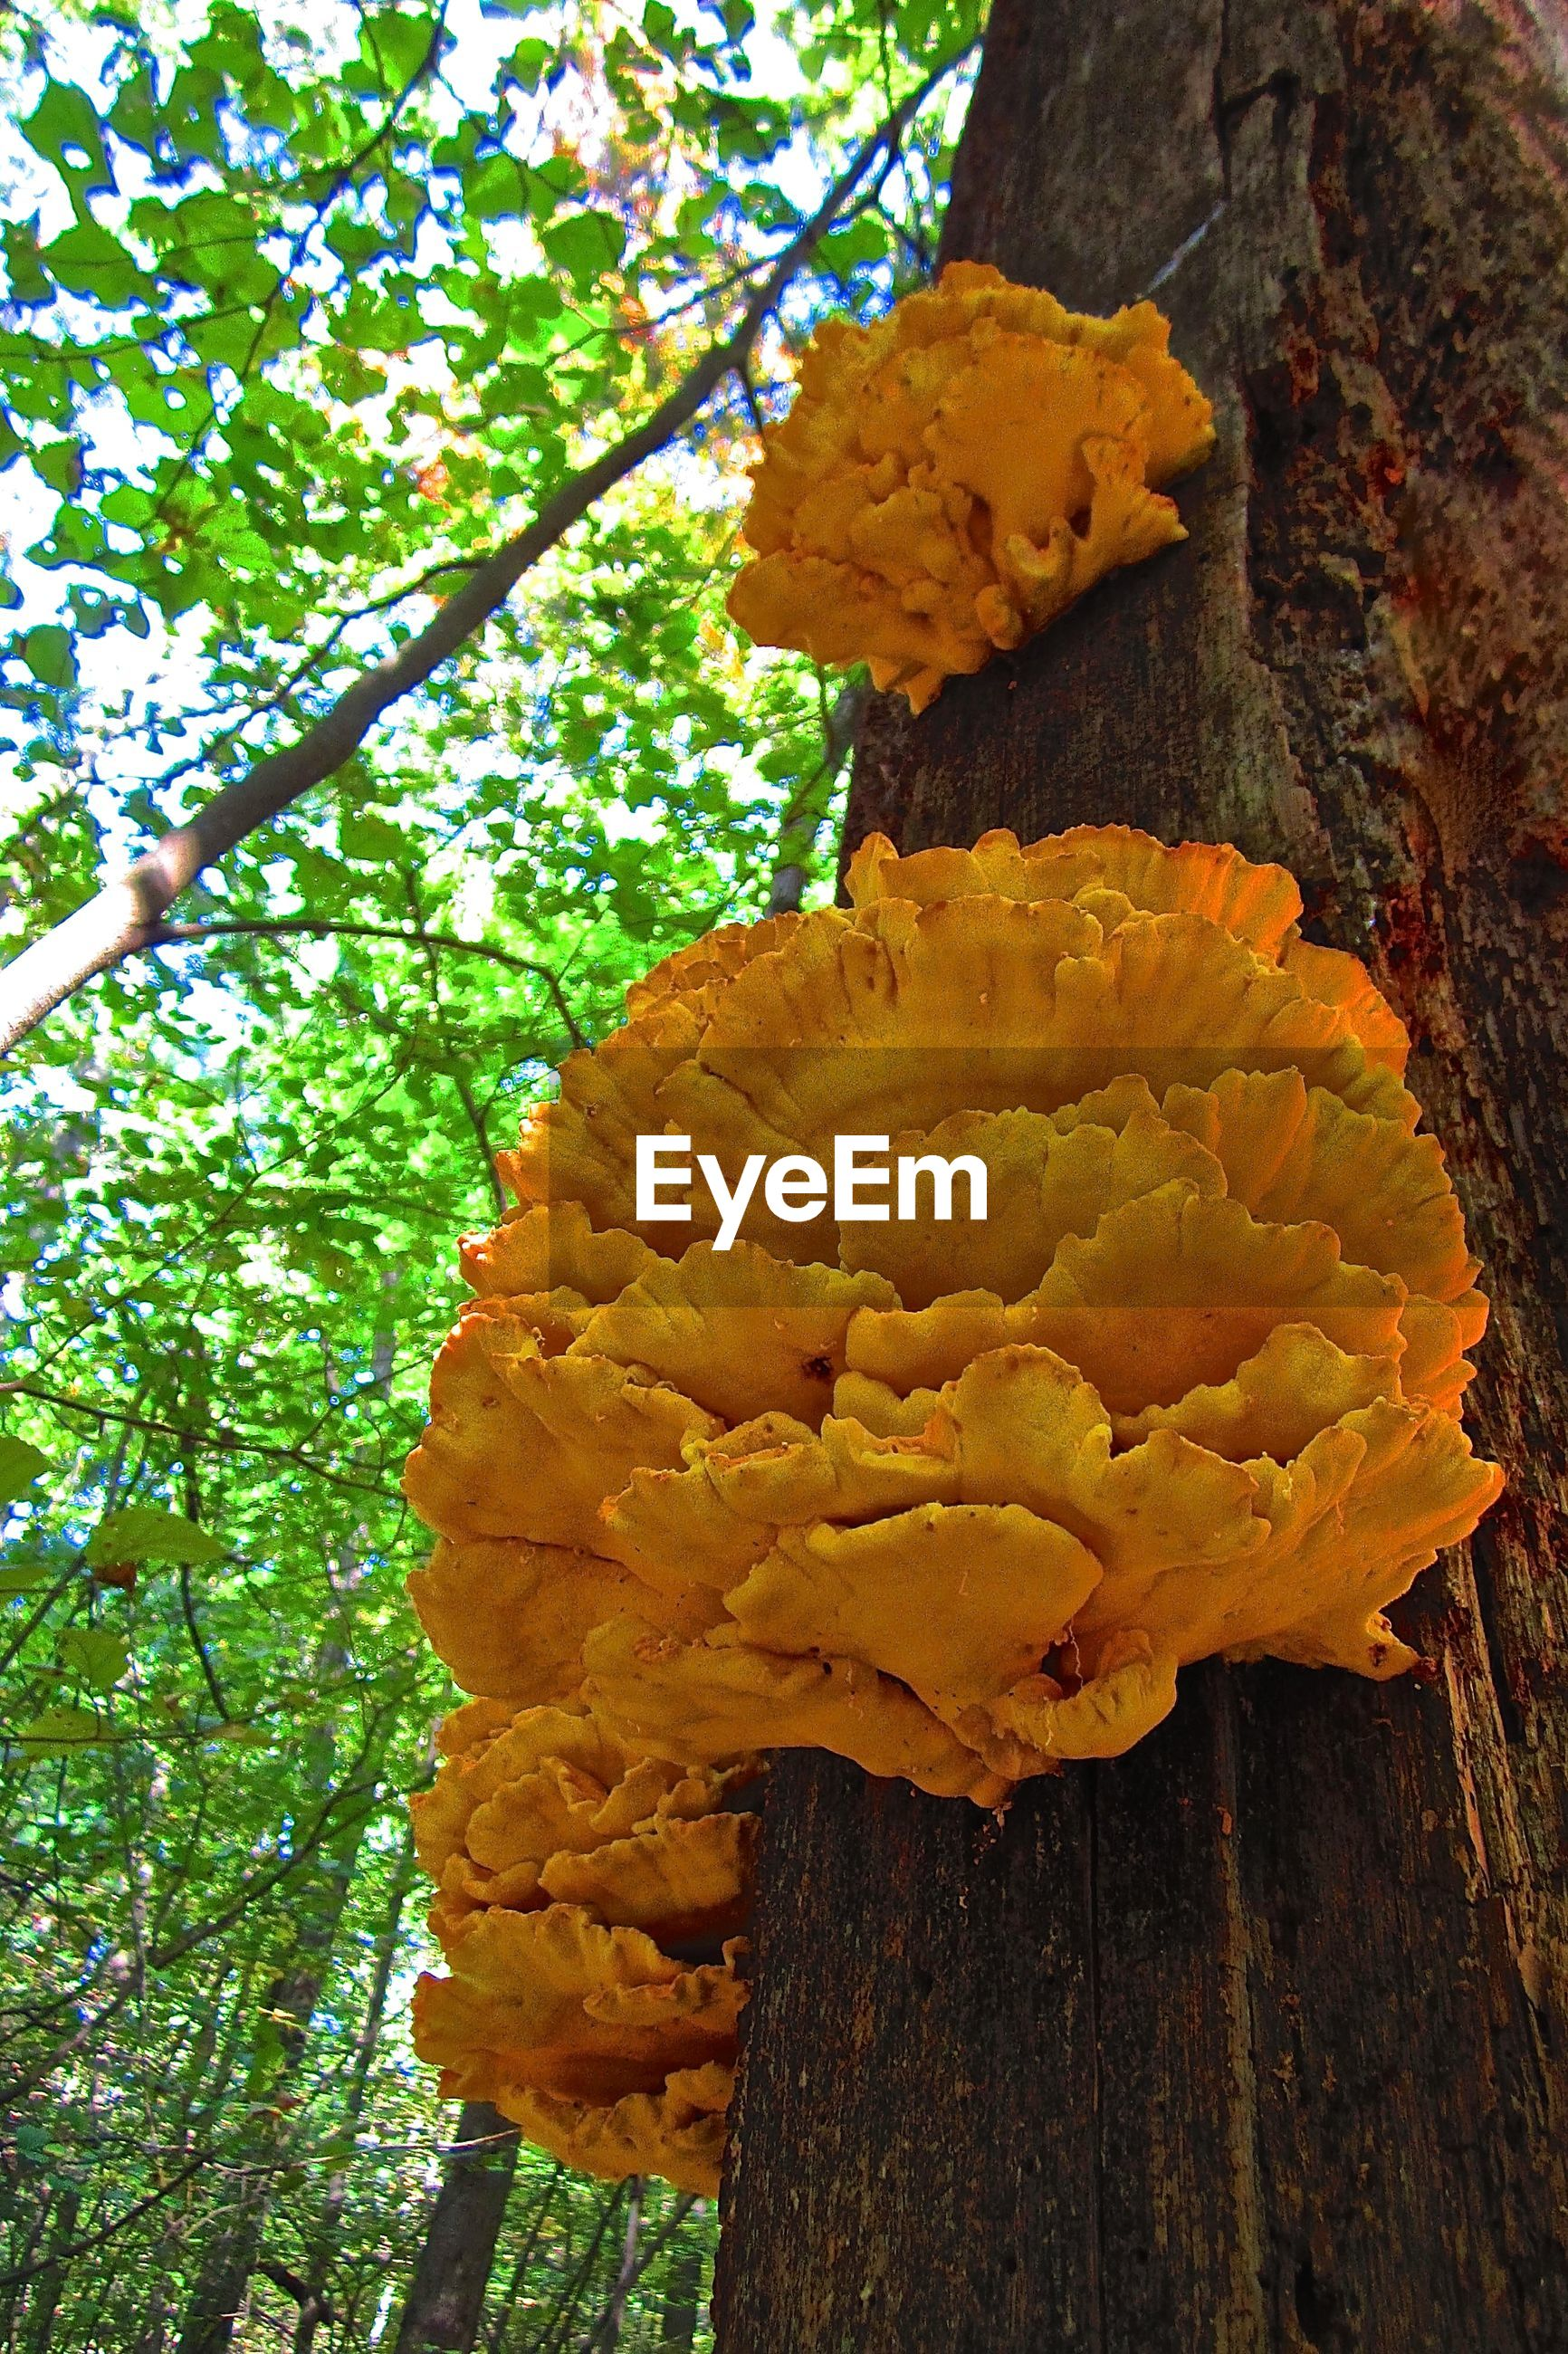 Close-up of fungus growing on tree trunk in forest